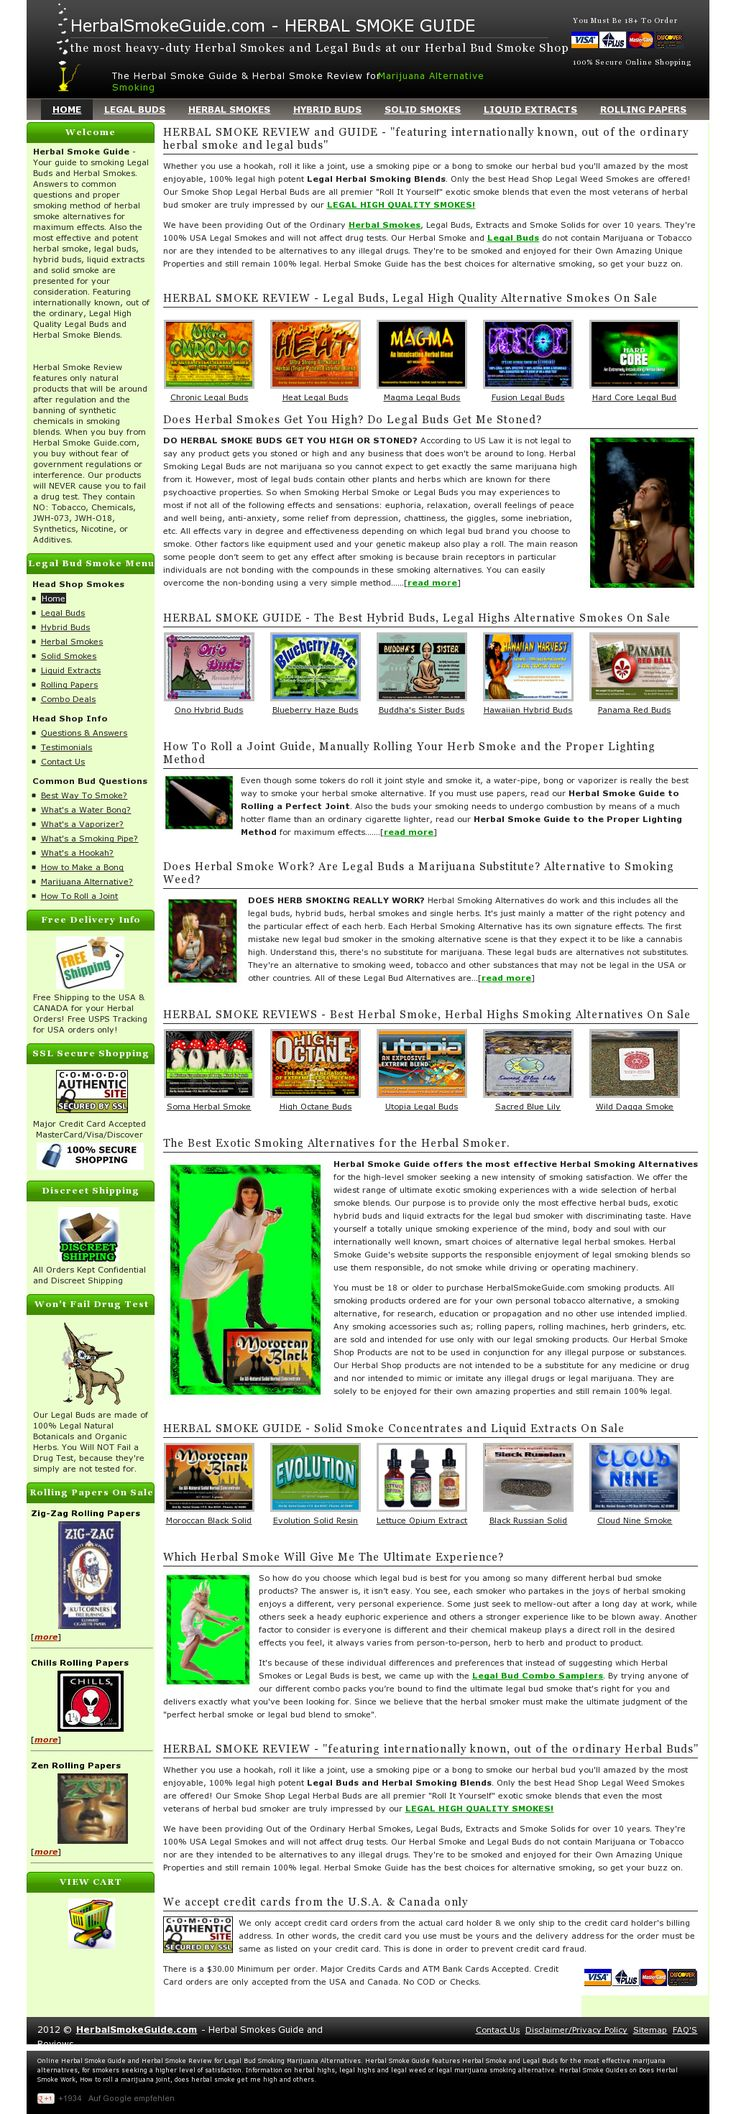 """Website 'http://www.herbalsmokeguide.com/' - Whether you use a hookah, roll it like a joint, use a smoking pipe or a bong to smoke our herbal bud you'll amazed by the most enjoyable, 100% legal high potent Legal Herbal Smoking Blends. Only the best Head Shop Legal Weed Smokes are offered! Our Smoke Shop Legal Herbal Buds are all premier """"Roll It Yourself"""" exotic smoke blends that even the most veterans of herbal bud smoker are truly impressed"""